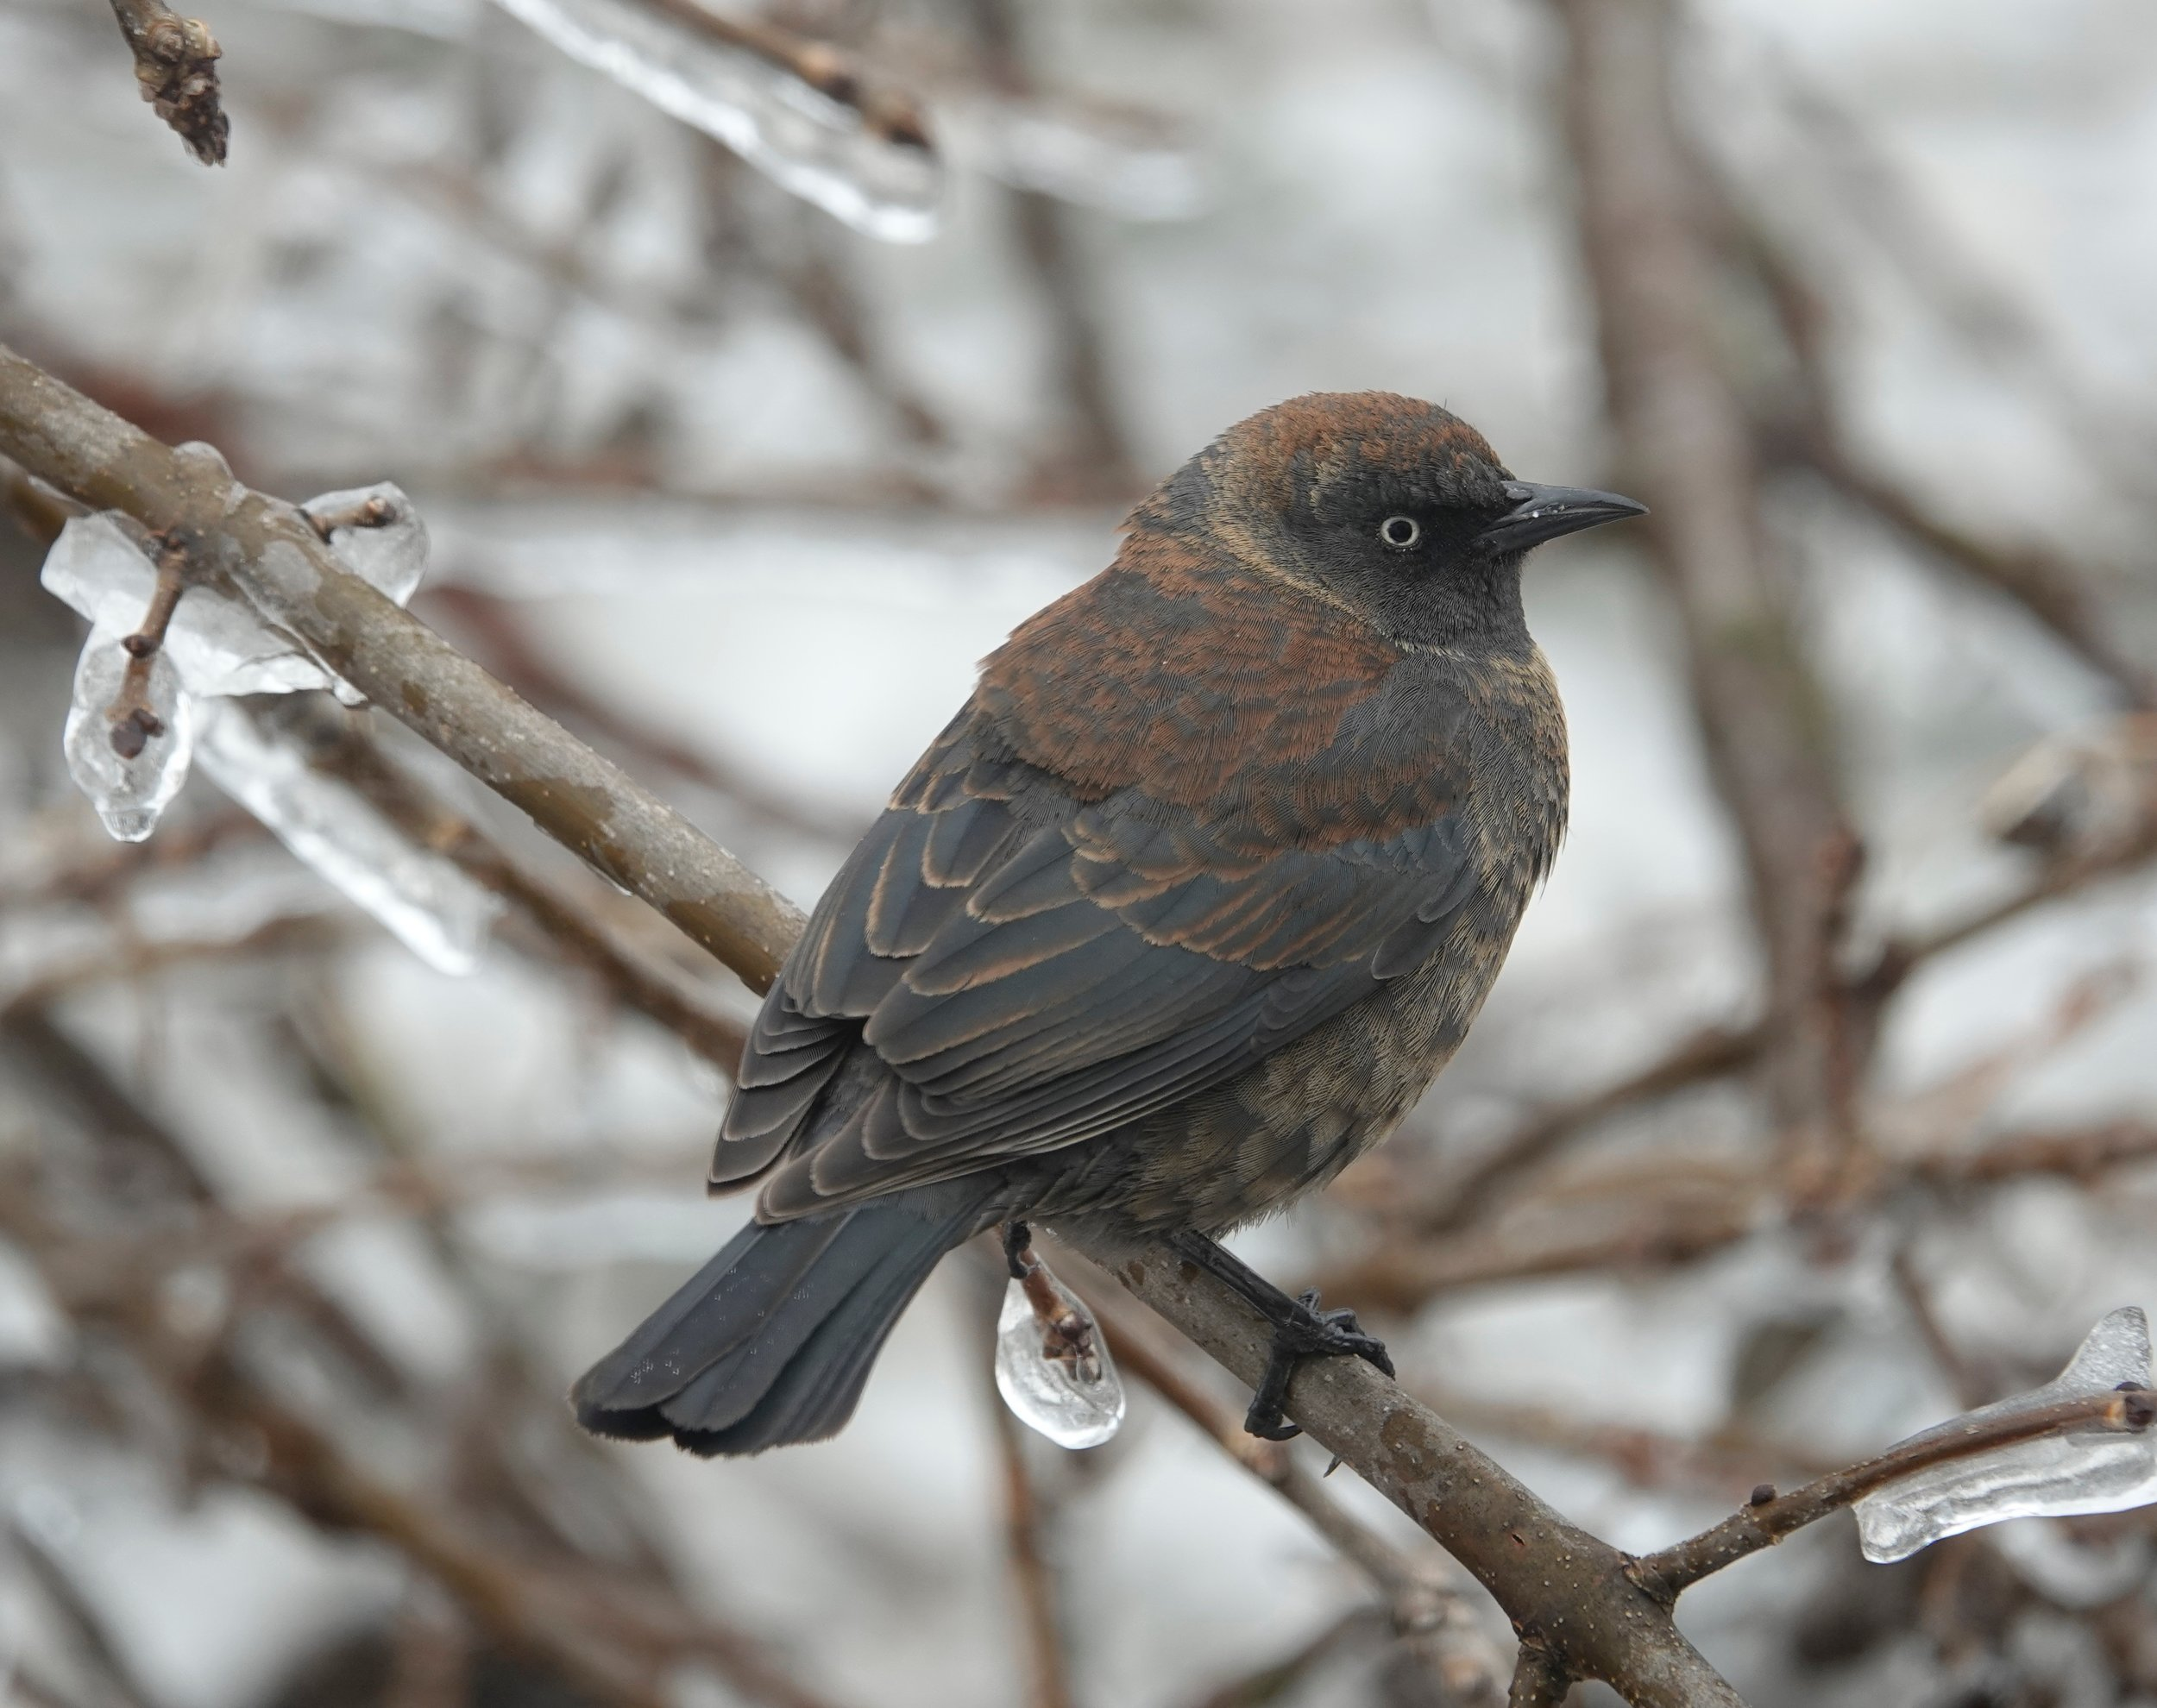 This rusty blackbird had avoided becoming an icy blackbird.